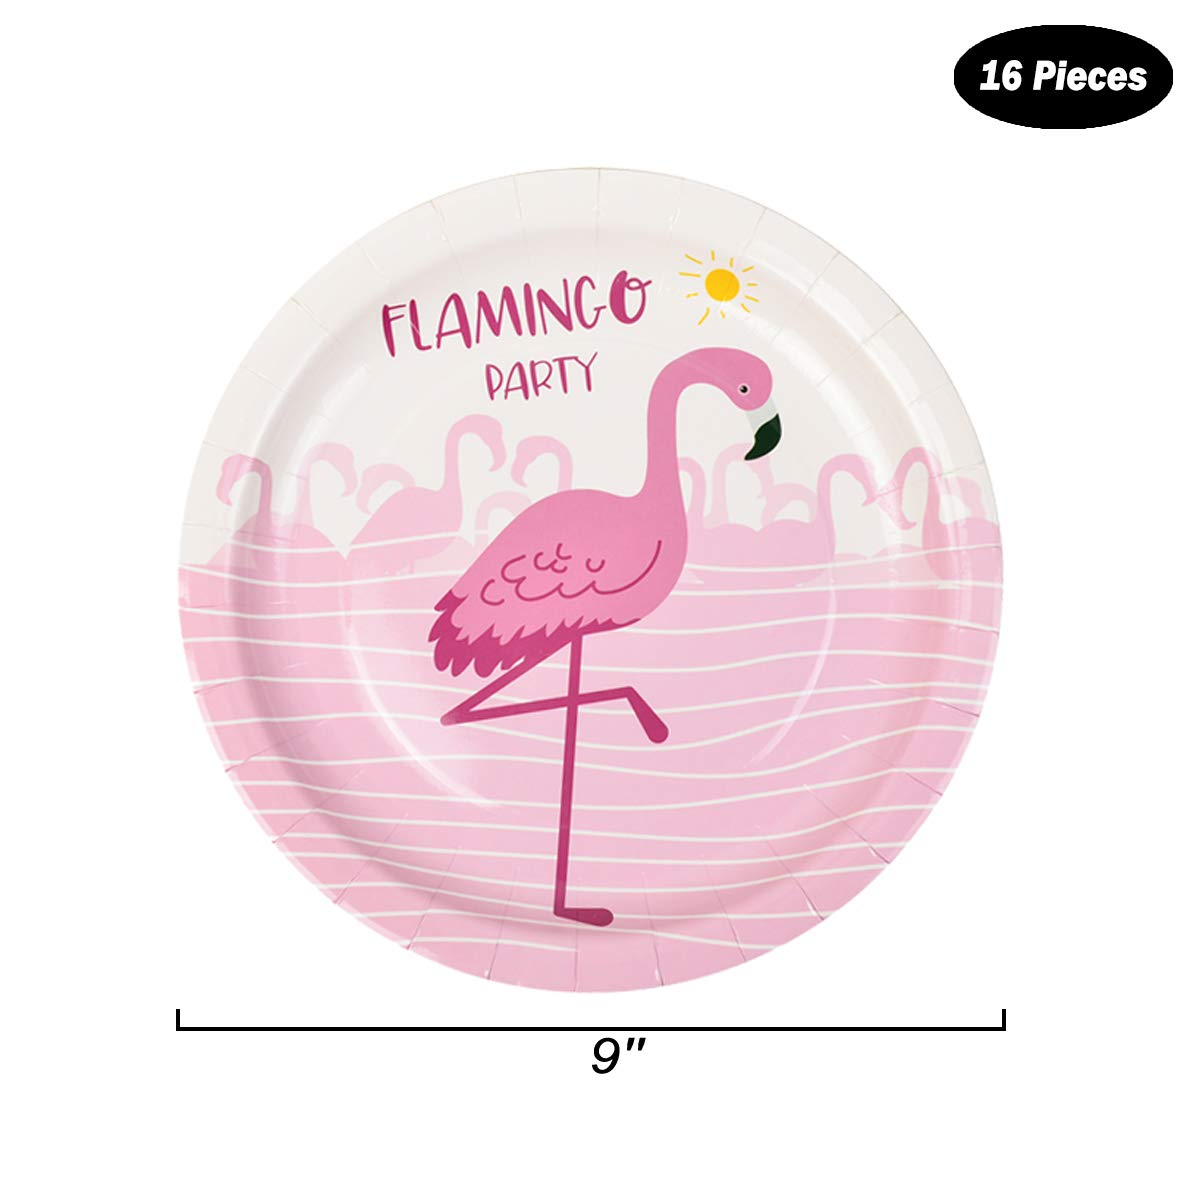 2 PCS 71/'/'/× 43/'/' Tropical Luau Party Table Cover La fete Flamingo Disposable Plastic Tablecloth Birthday Party Supplies for Kids Girls Picnic Wedding Baby Shower Party Decoration